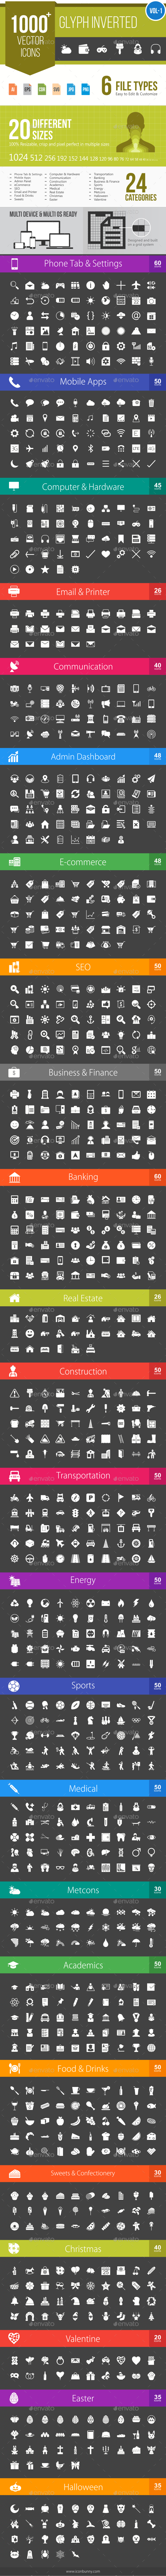 GraphicRiver 1000& Glyph Inverted Vector Icons 11652550